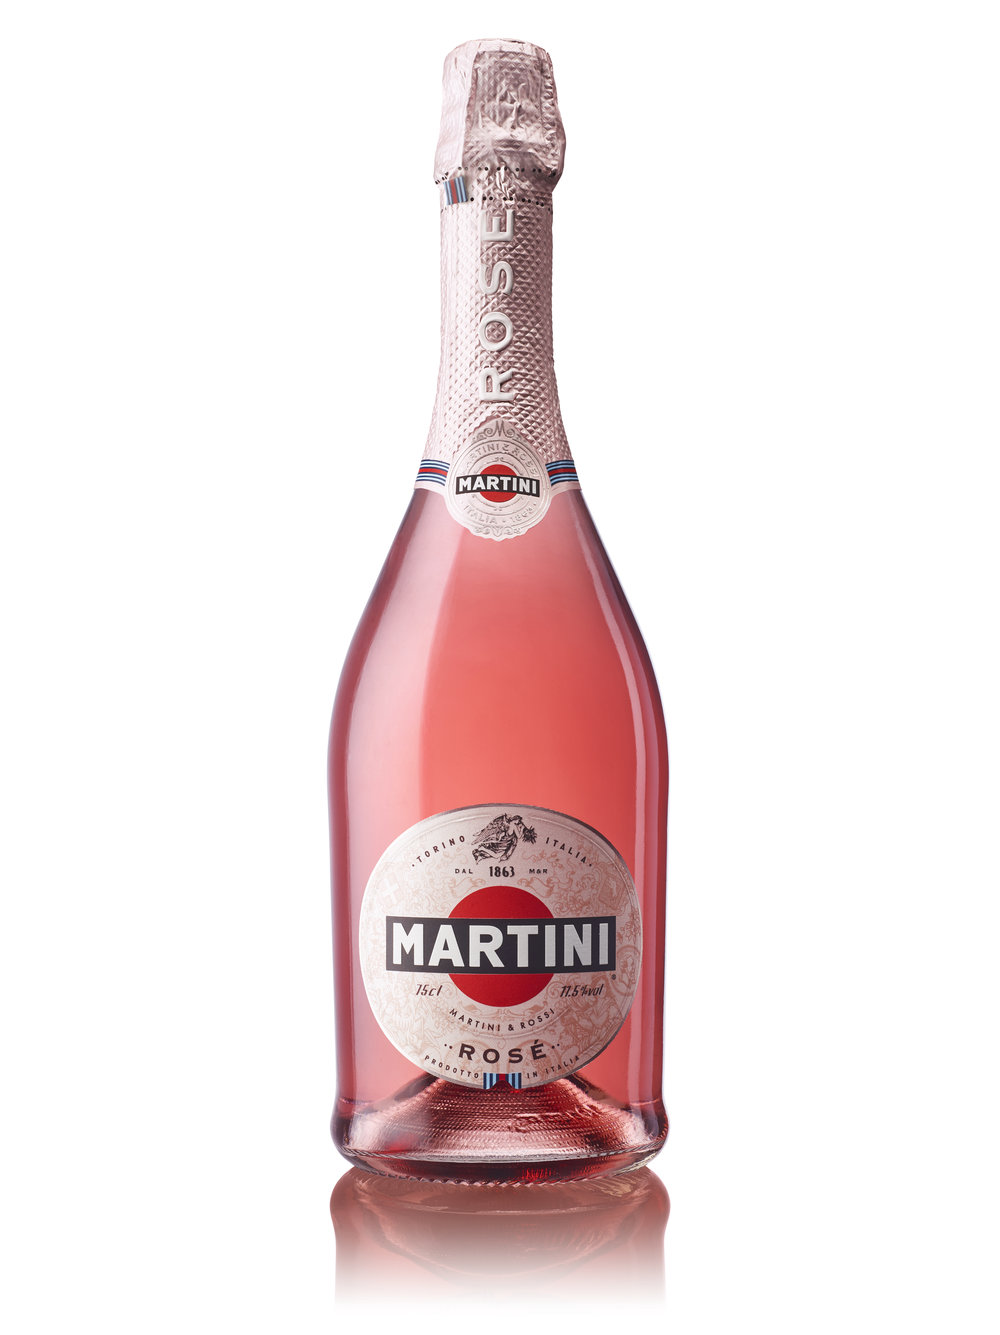 Martini Prosecco Rose.jpg